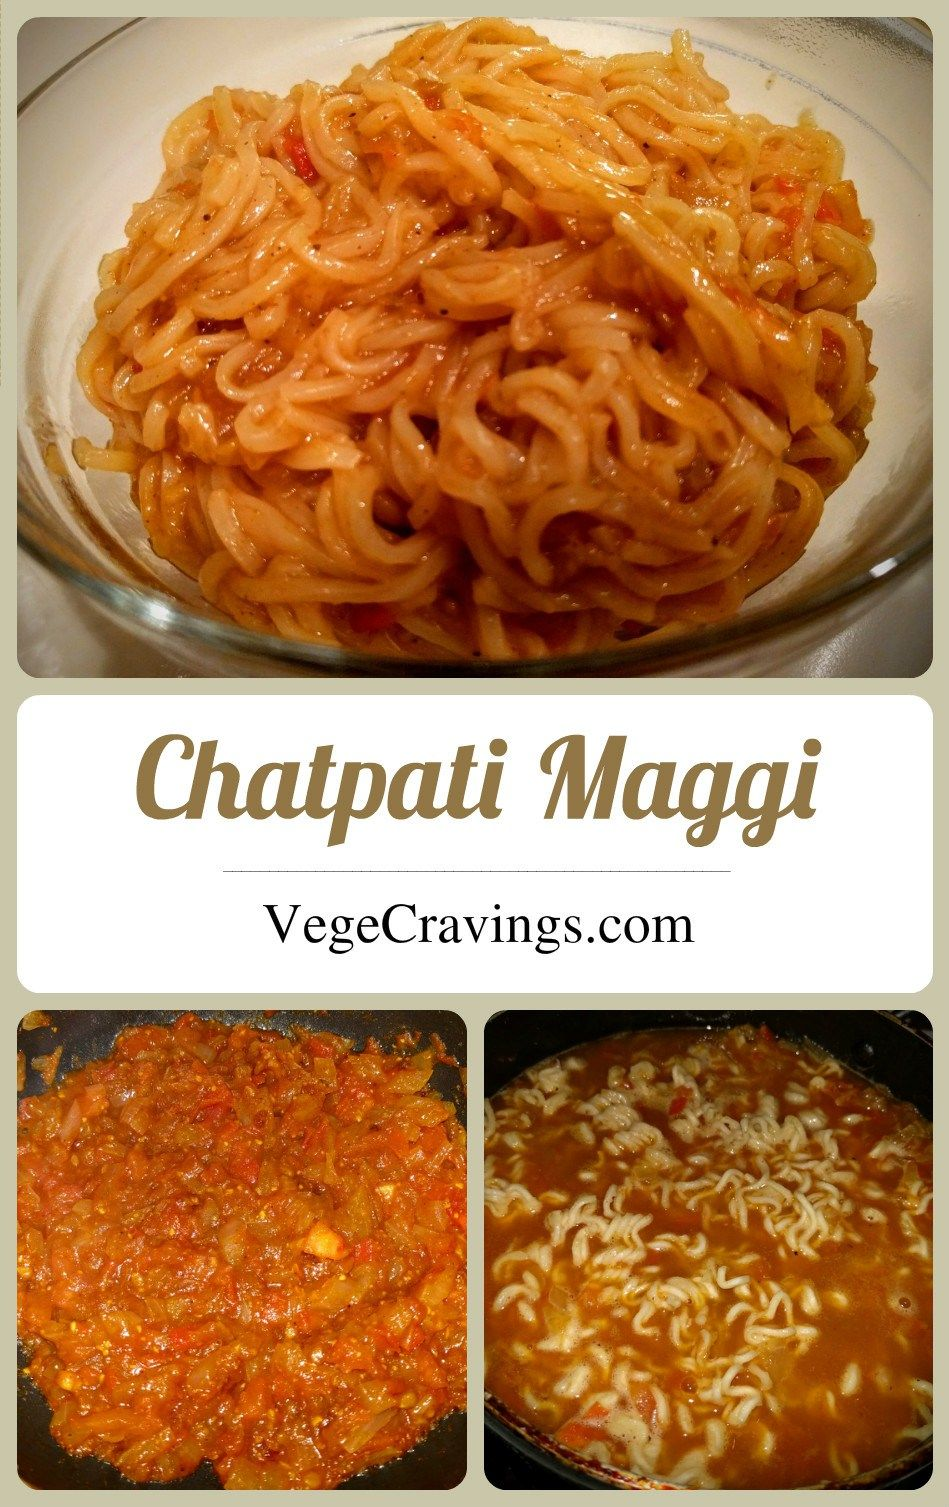 Diet Maggi, cottage cheese option. Menu and feedback on the results 71